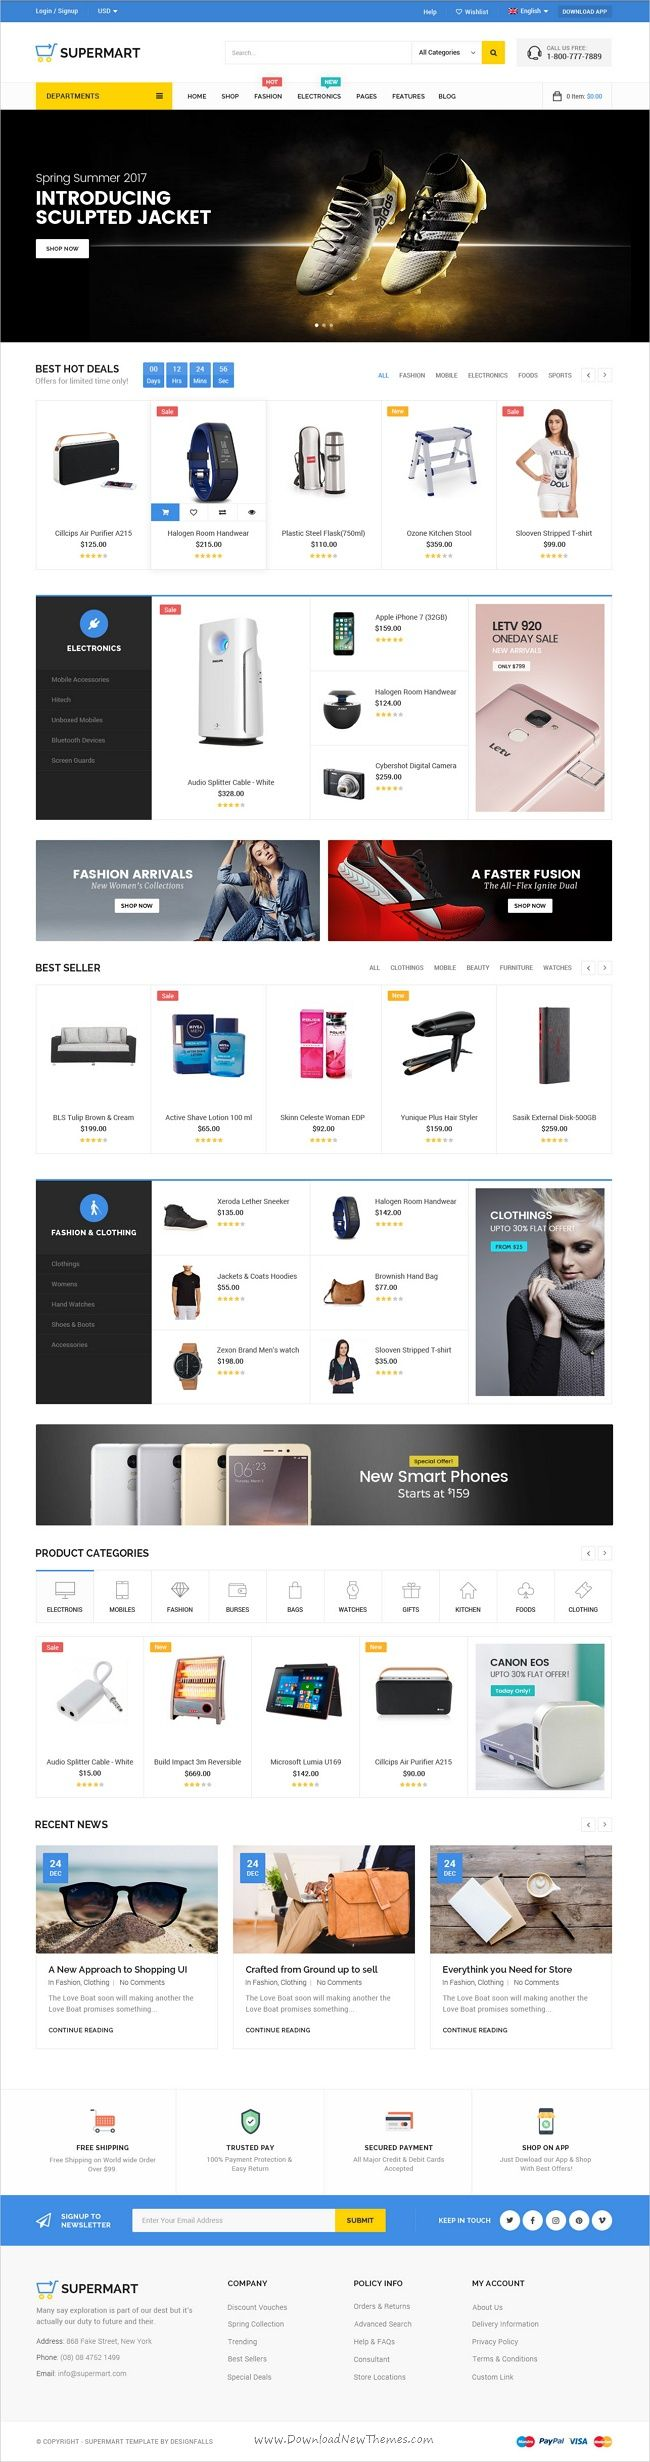 Supermart is a fresh and modern design #PSD #template for stunning #eCommerce websites with 3 unique homepage layouts and 25 organized PSD pages download now➩  https://themeforest.net/item/supermart-fresh-multipurpose-ecommerce-psd-template/19291181?ref=Datasata